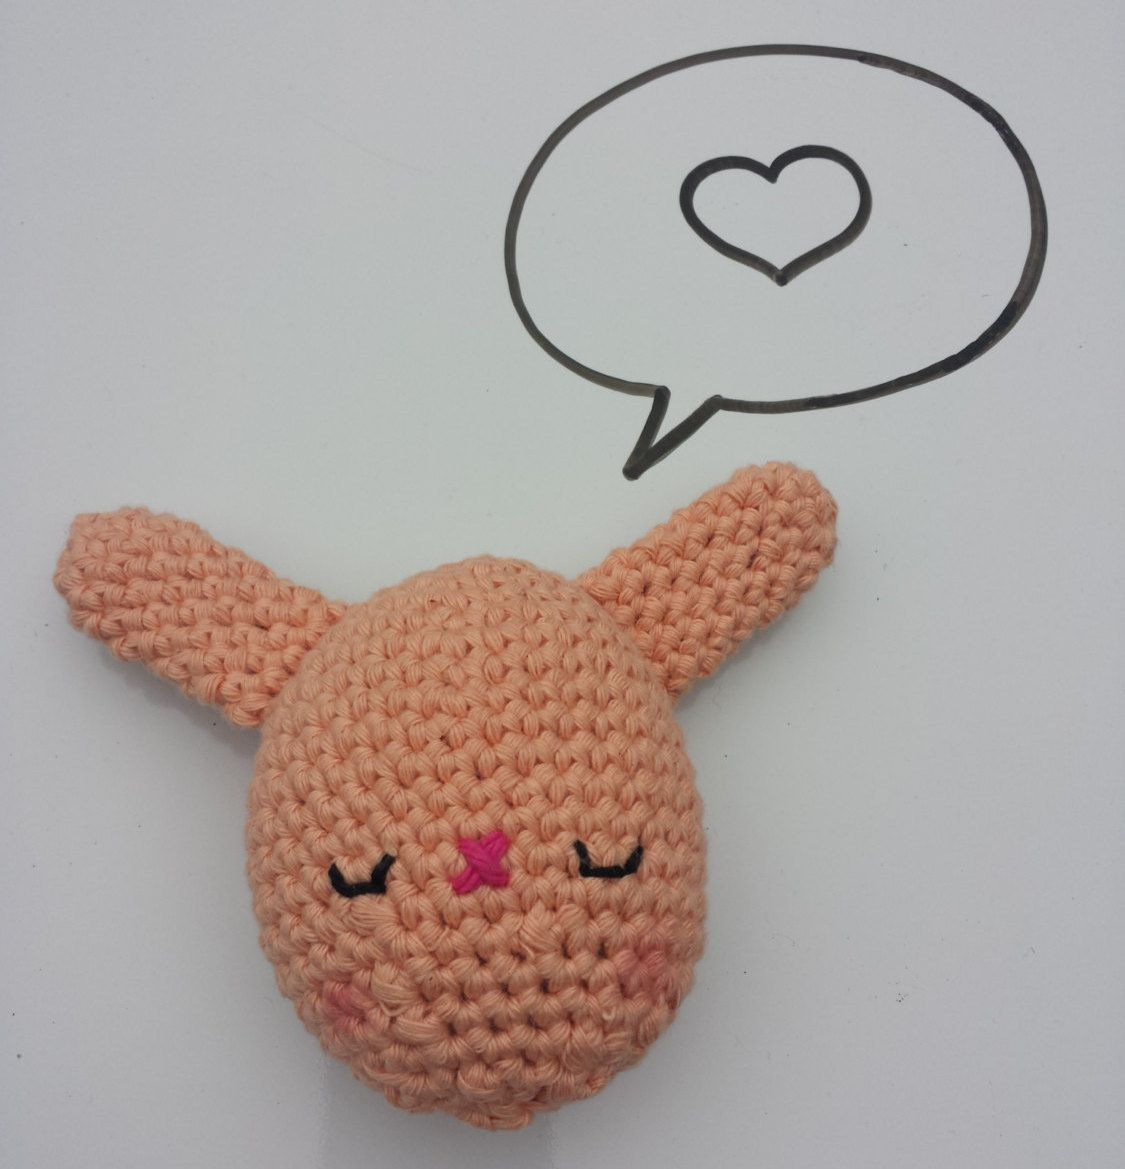 Crochet stuffed Bunny Egg toy, in 100% Cotton, Pastel Peach, Available in other colours by CroShellbyshelley on Etsy